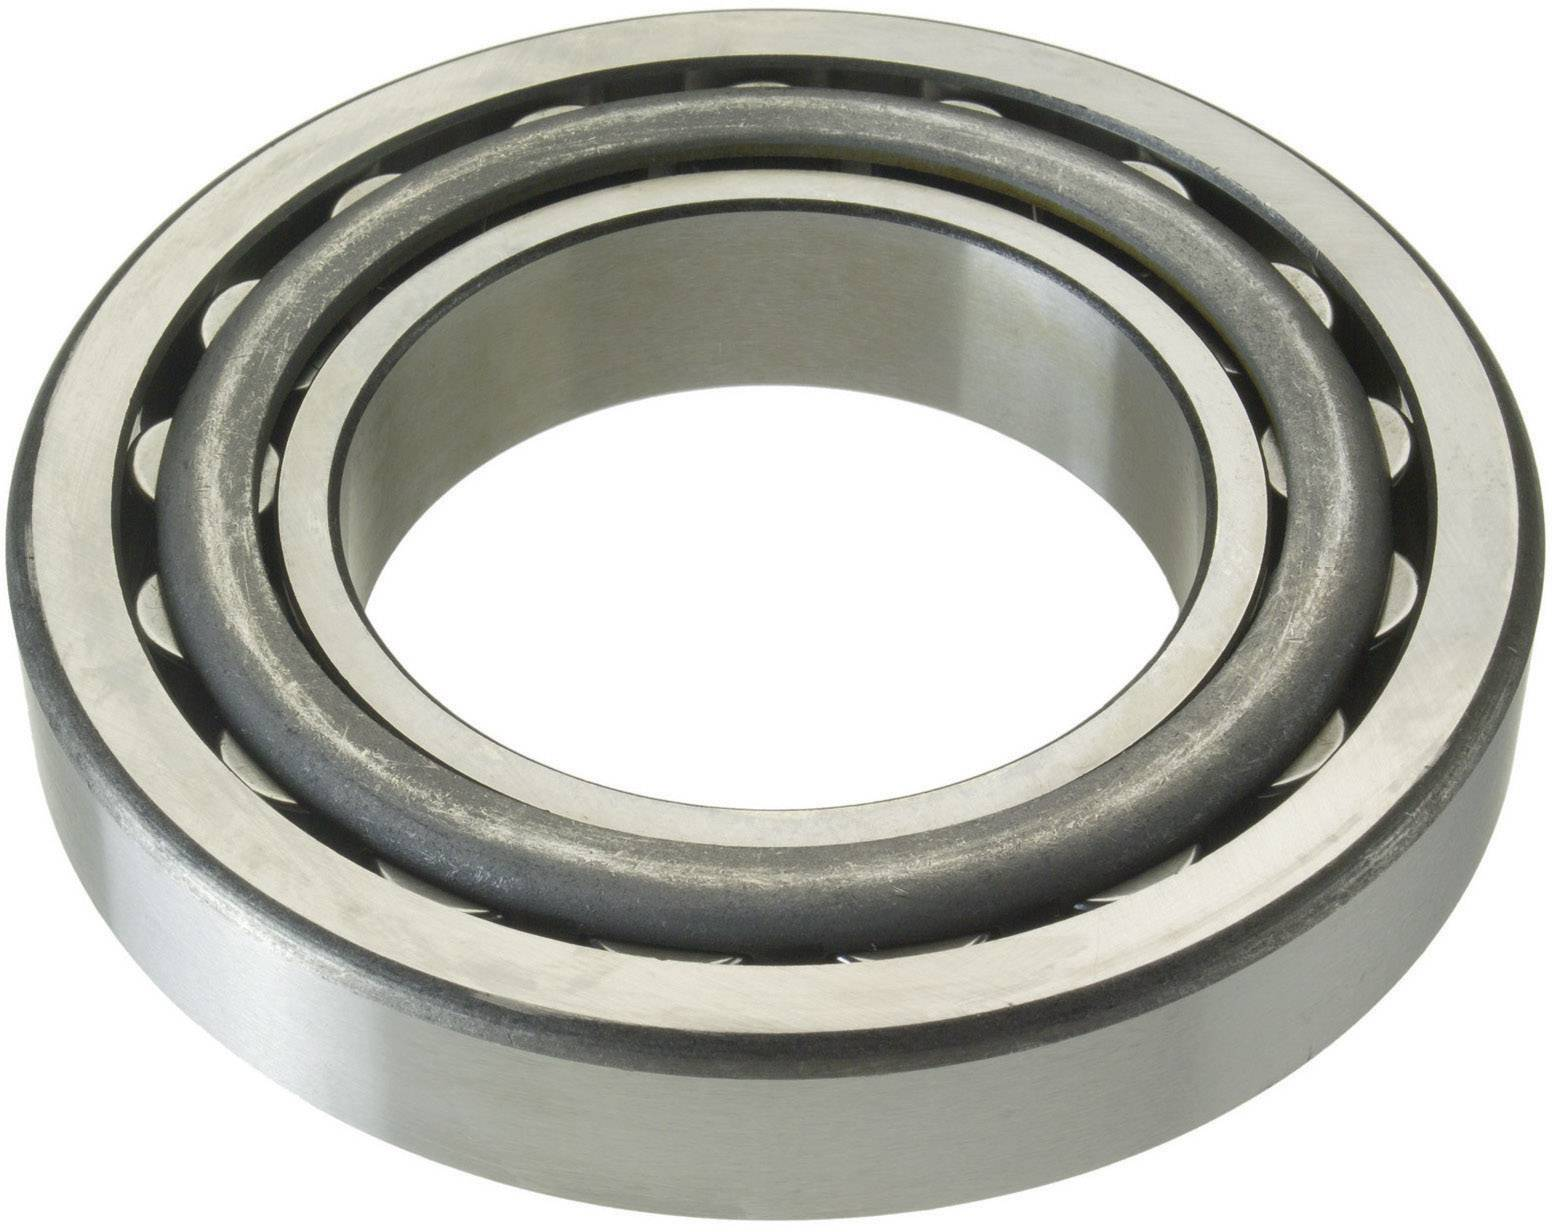 Metric 200mm OD Normal Clearance 52mm Width 130mm ID 735kN Static Load Capacity 540kN Dynamic Load Capacity Schaeffler Technologies Co FAG 23026E1A-M Spherical Roller Bearing 23026E1AM Brass Cage Straight Bore 3600rpm Maximum Rotational Speed